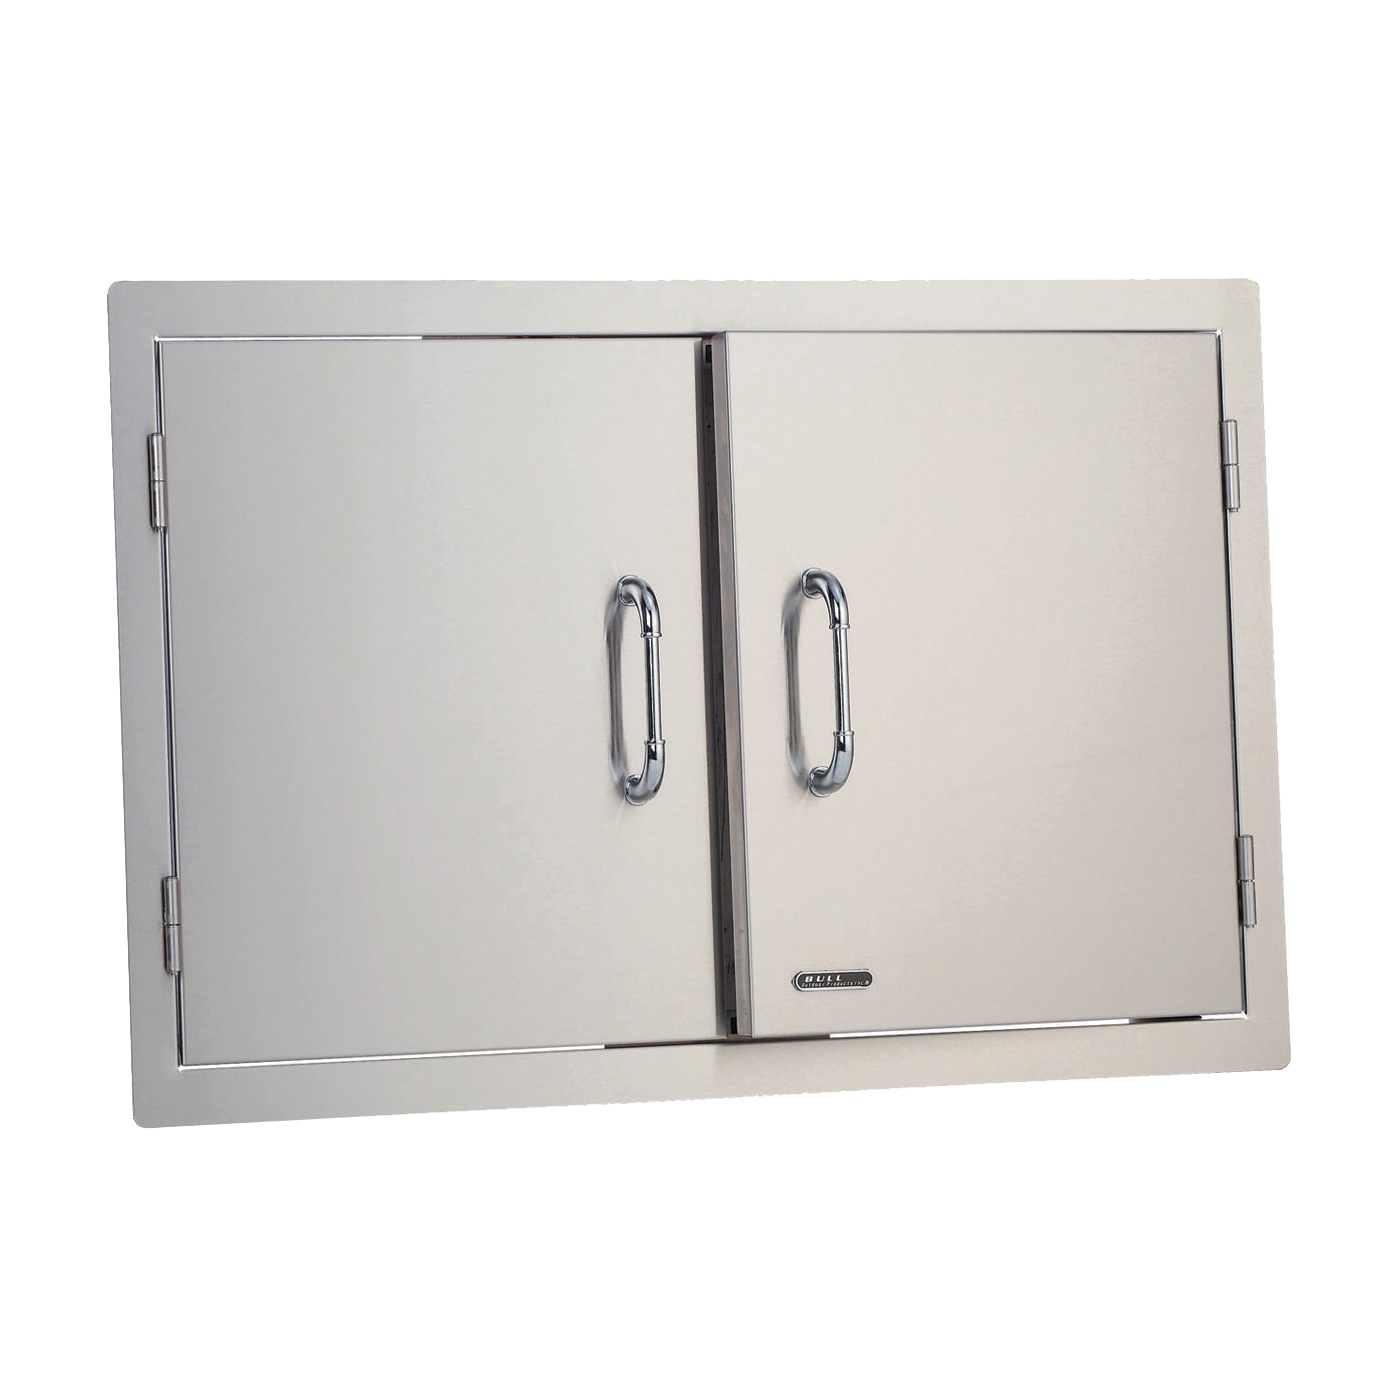 Picture of BULL 33568 Double-Walled Door, 33 in L, 22 in W, 2 in H, Stainless Steel